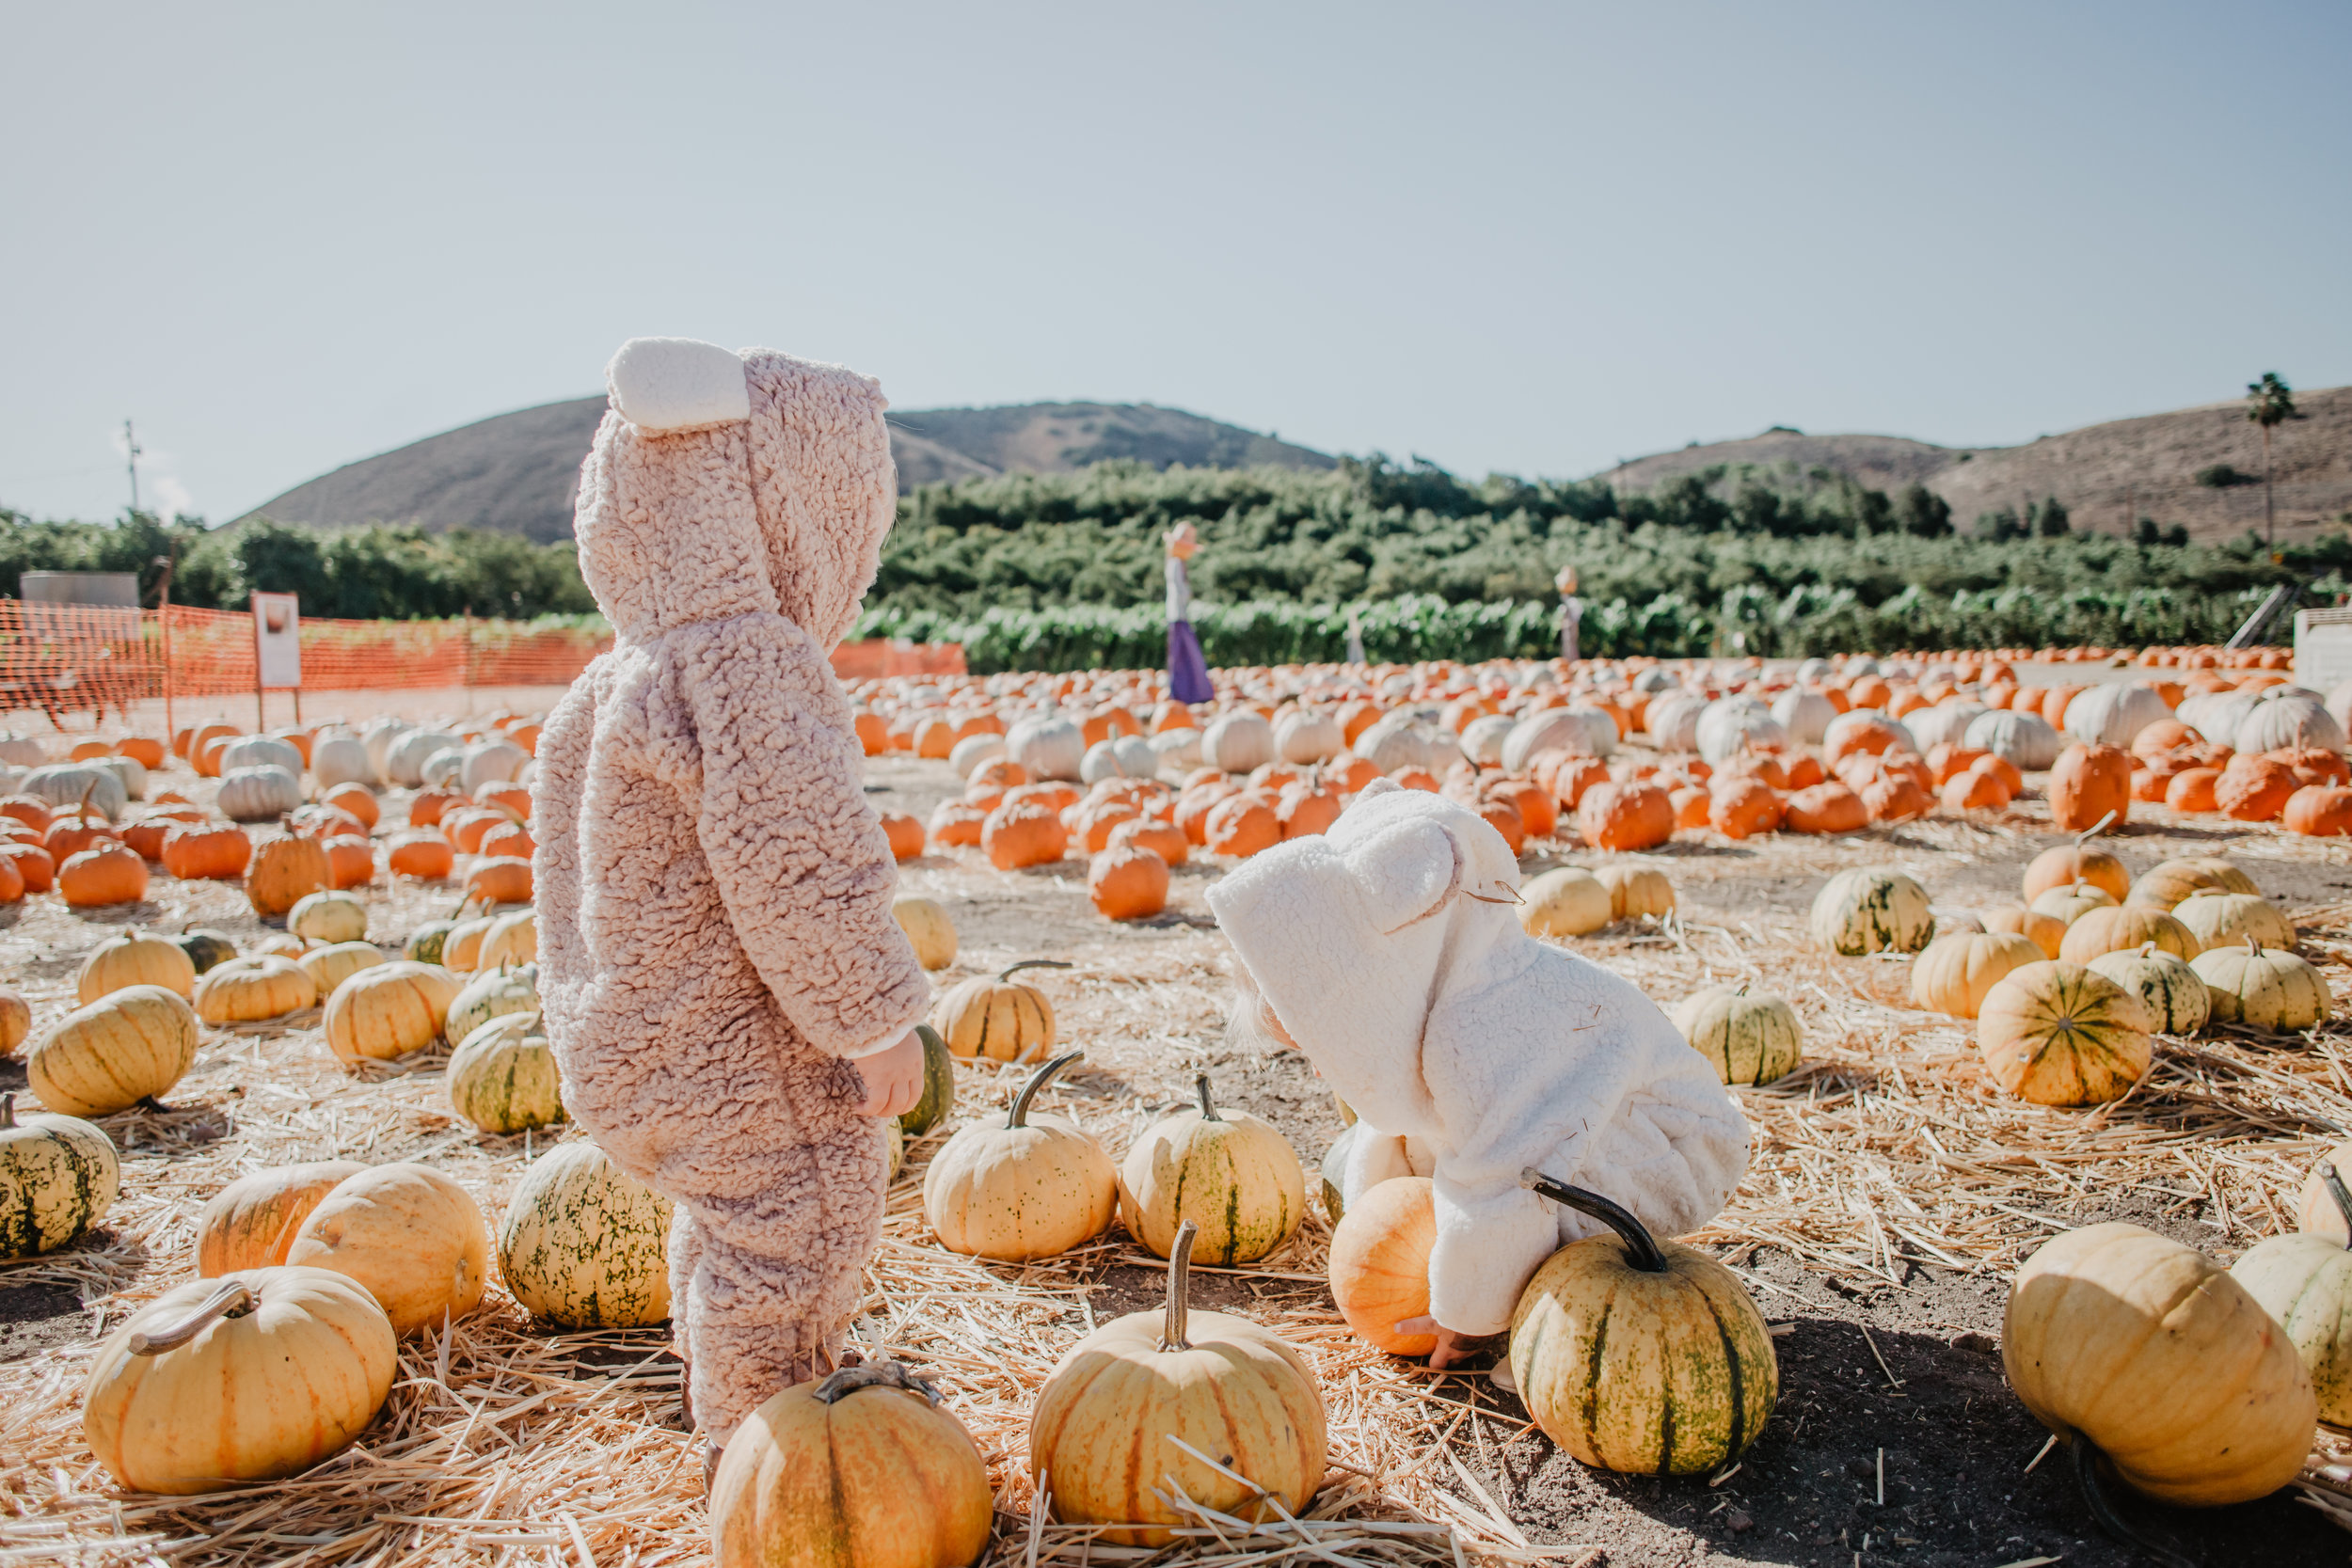 Kids-Baby Halloween Costume Ideas - Baby Bear Costume - Mommy Blogger/Vlogger -- The Overwhelmed Mommy